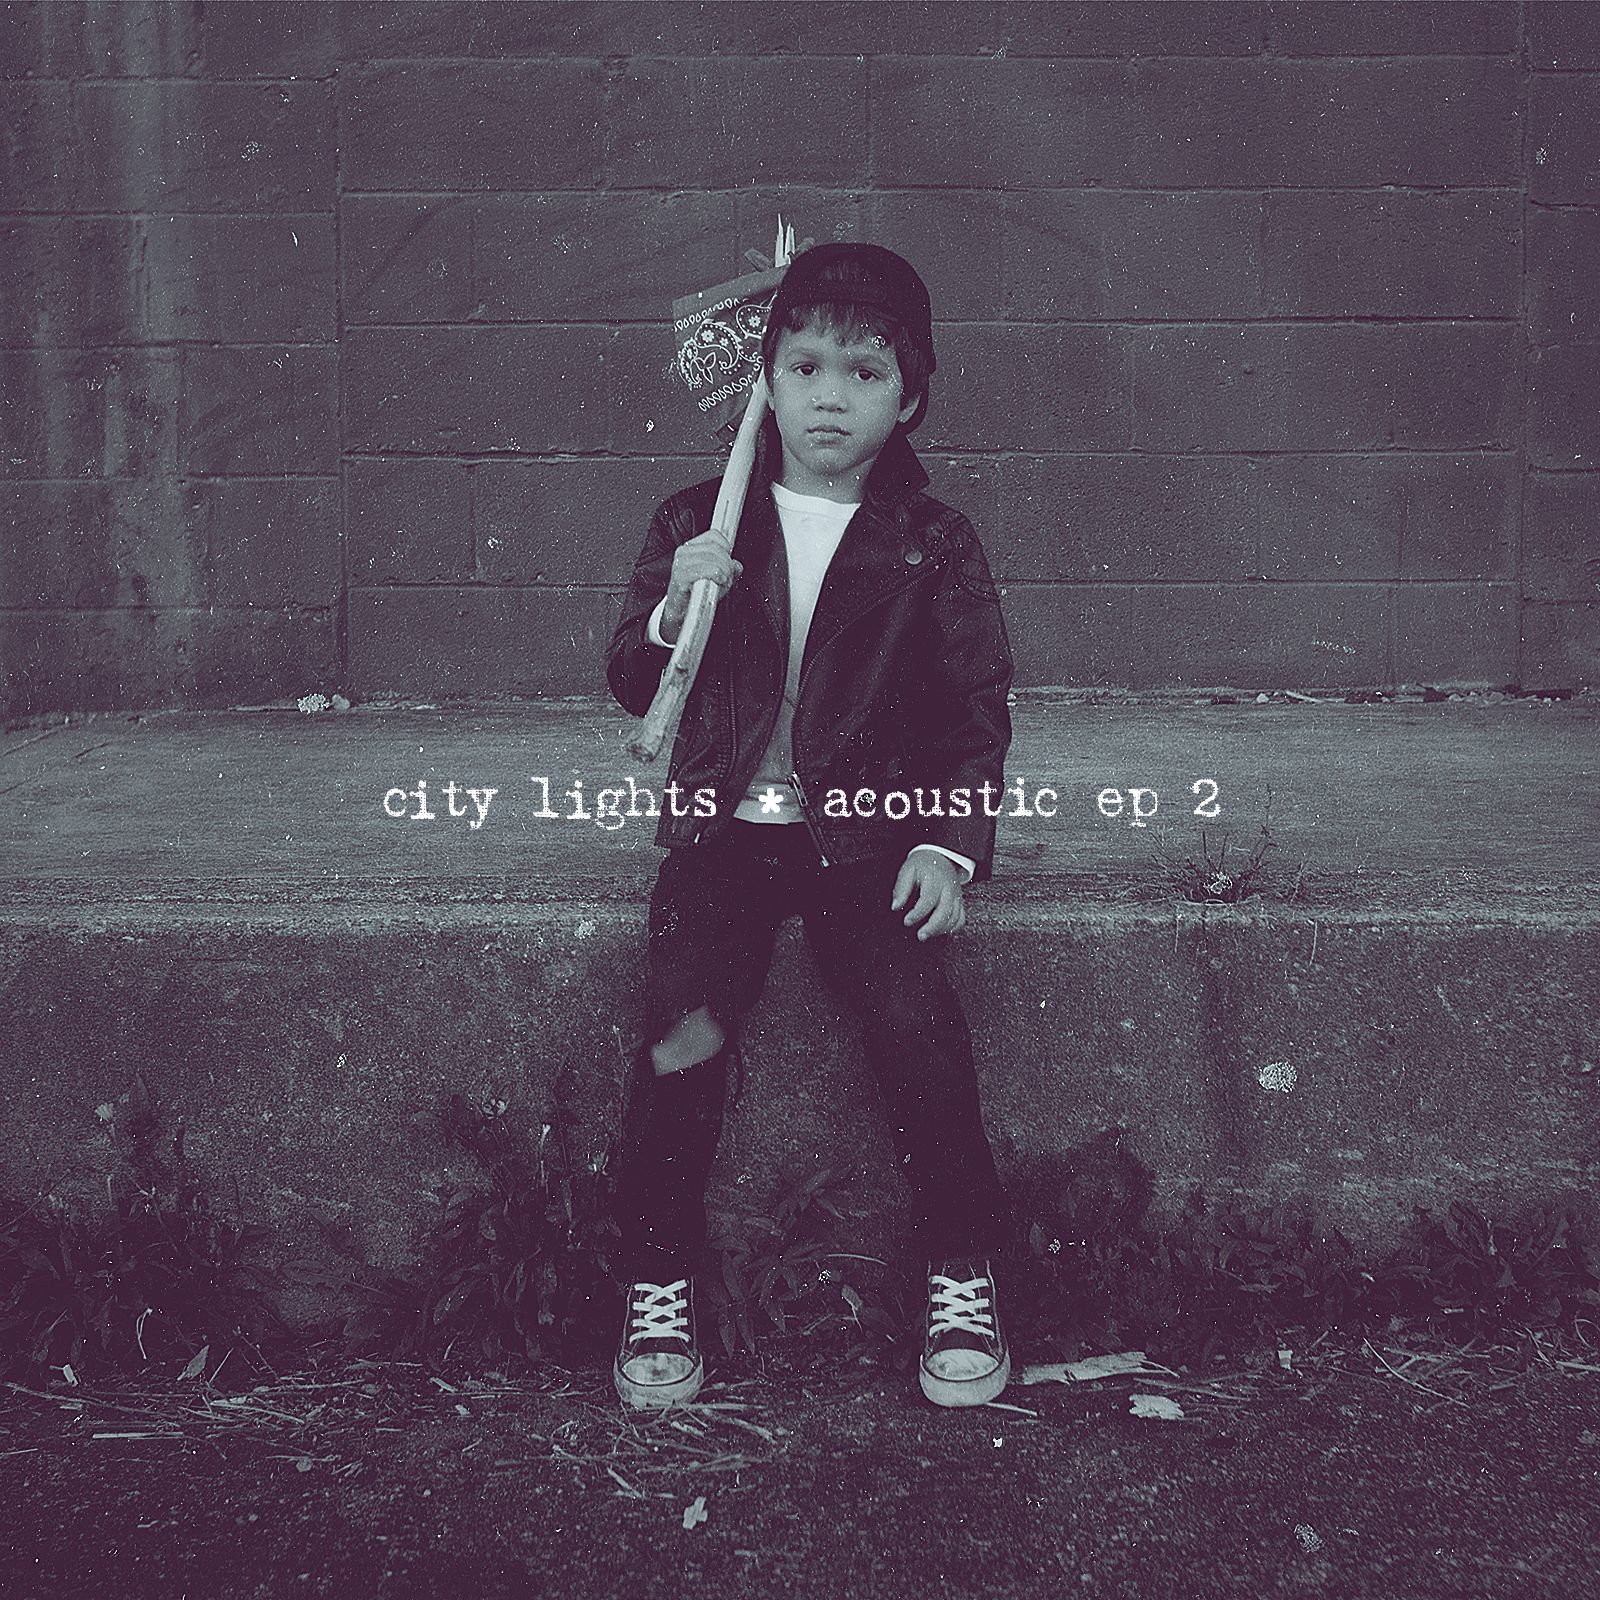 City Lights - Acoustic EP 2 (2015) » CORE RADIO!